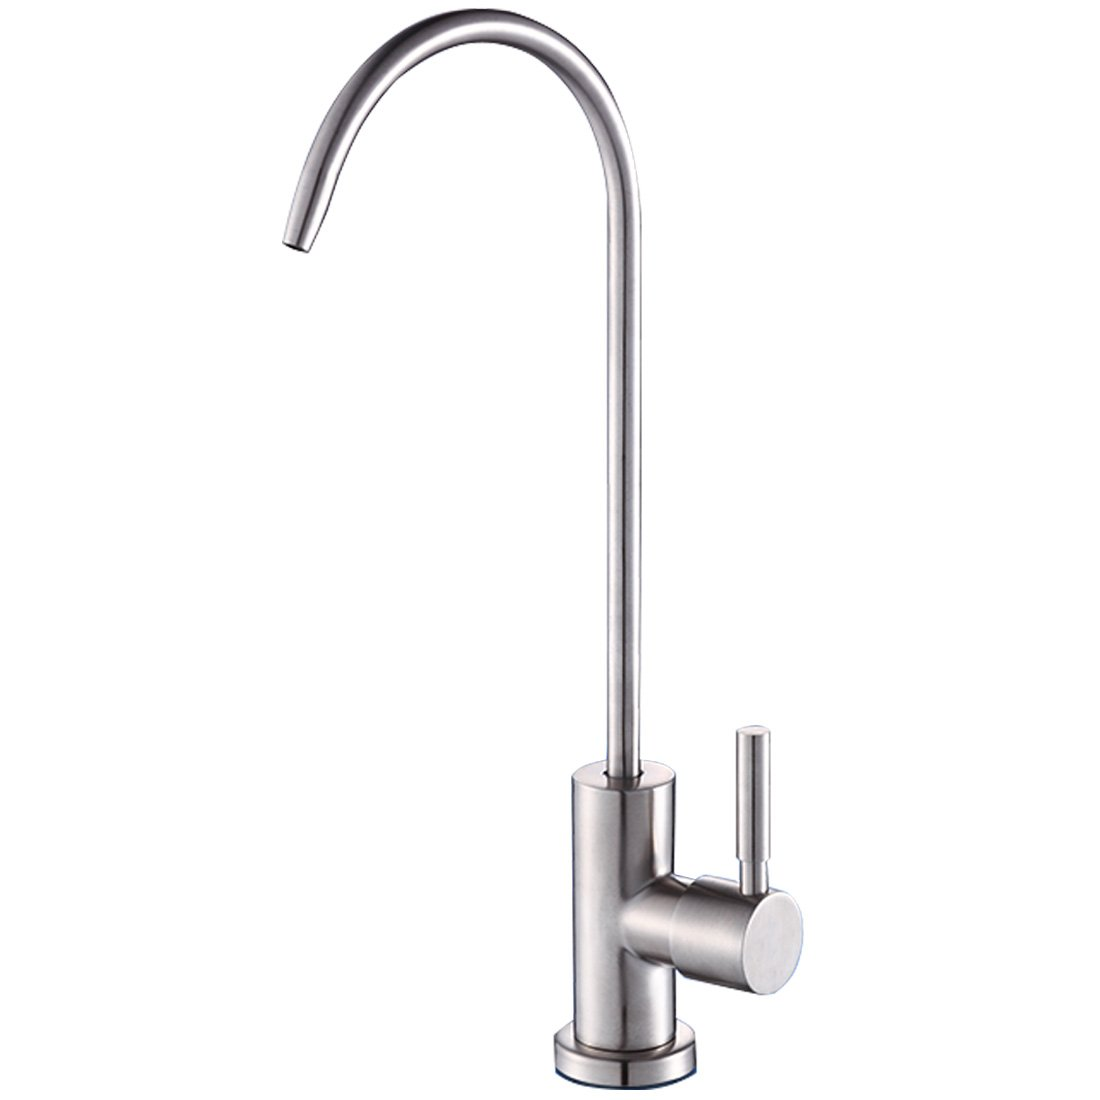 ESOW Kitchen Water Filter Faucet, 100% Lead-Free Drinking Water Faucet Fits most RO Units or Water Filtration System, Stainless Steel Body Brushed Nickel, Sink Water Filtration Faucet, 1/4-Inch Tube